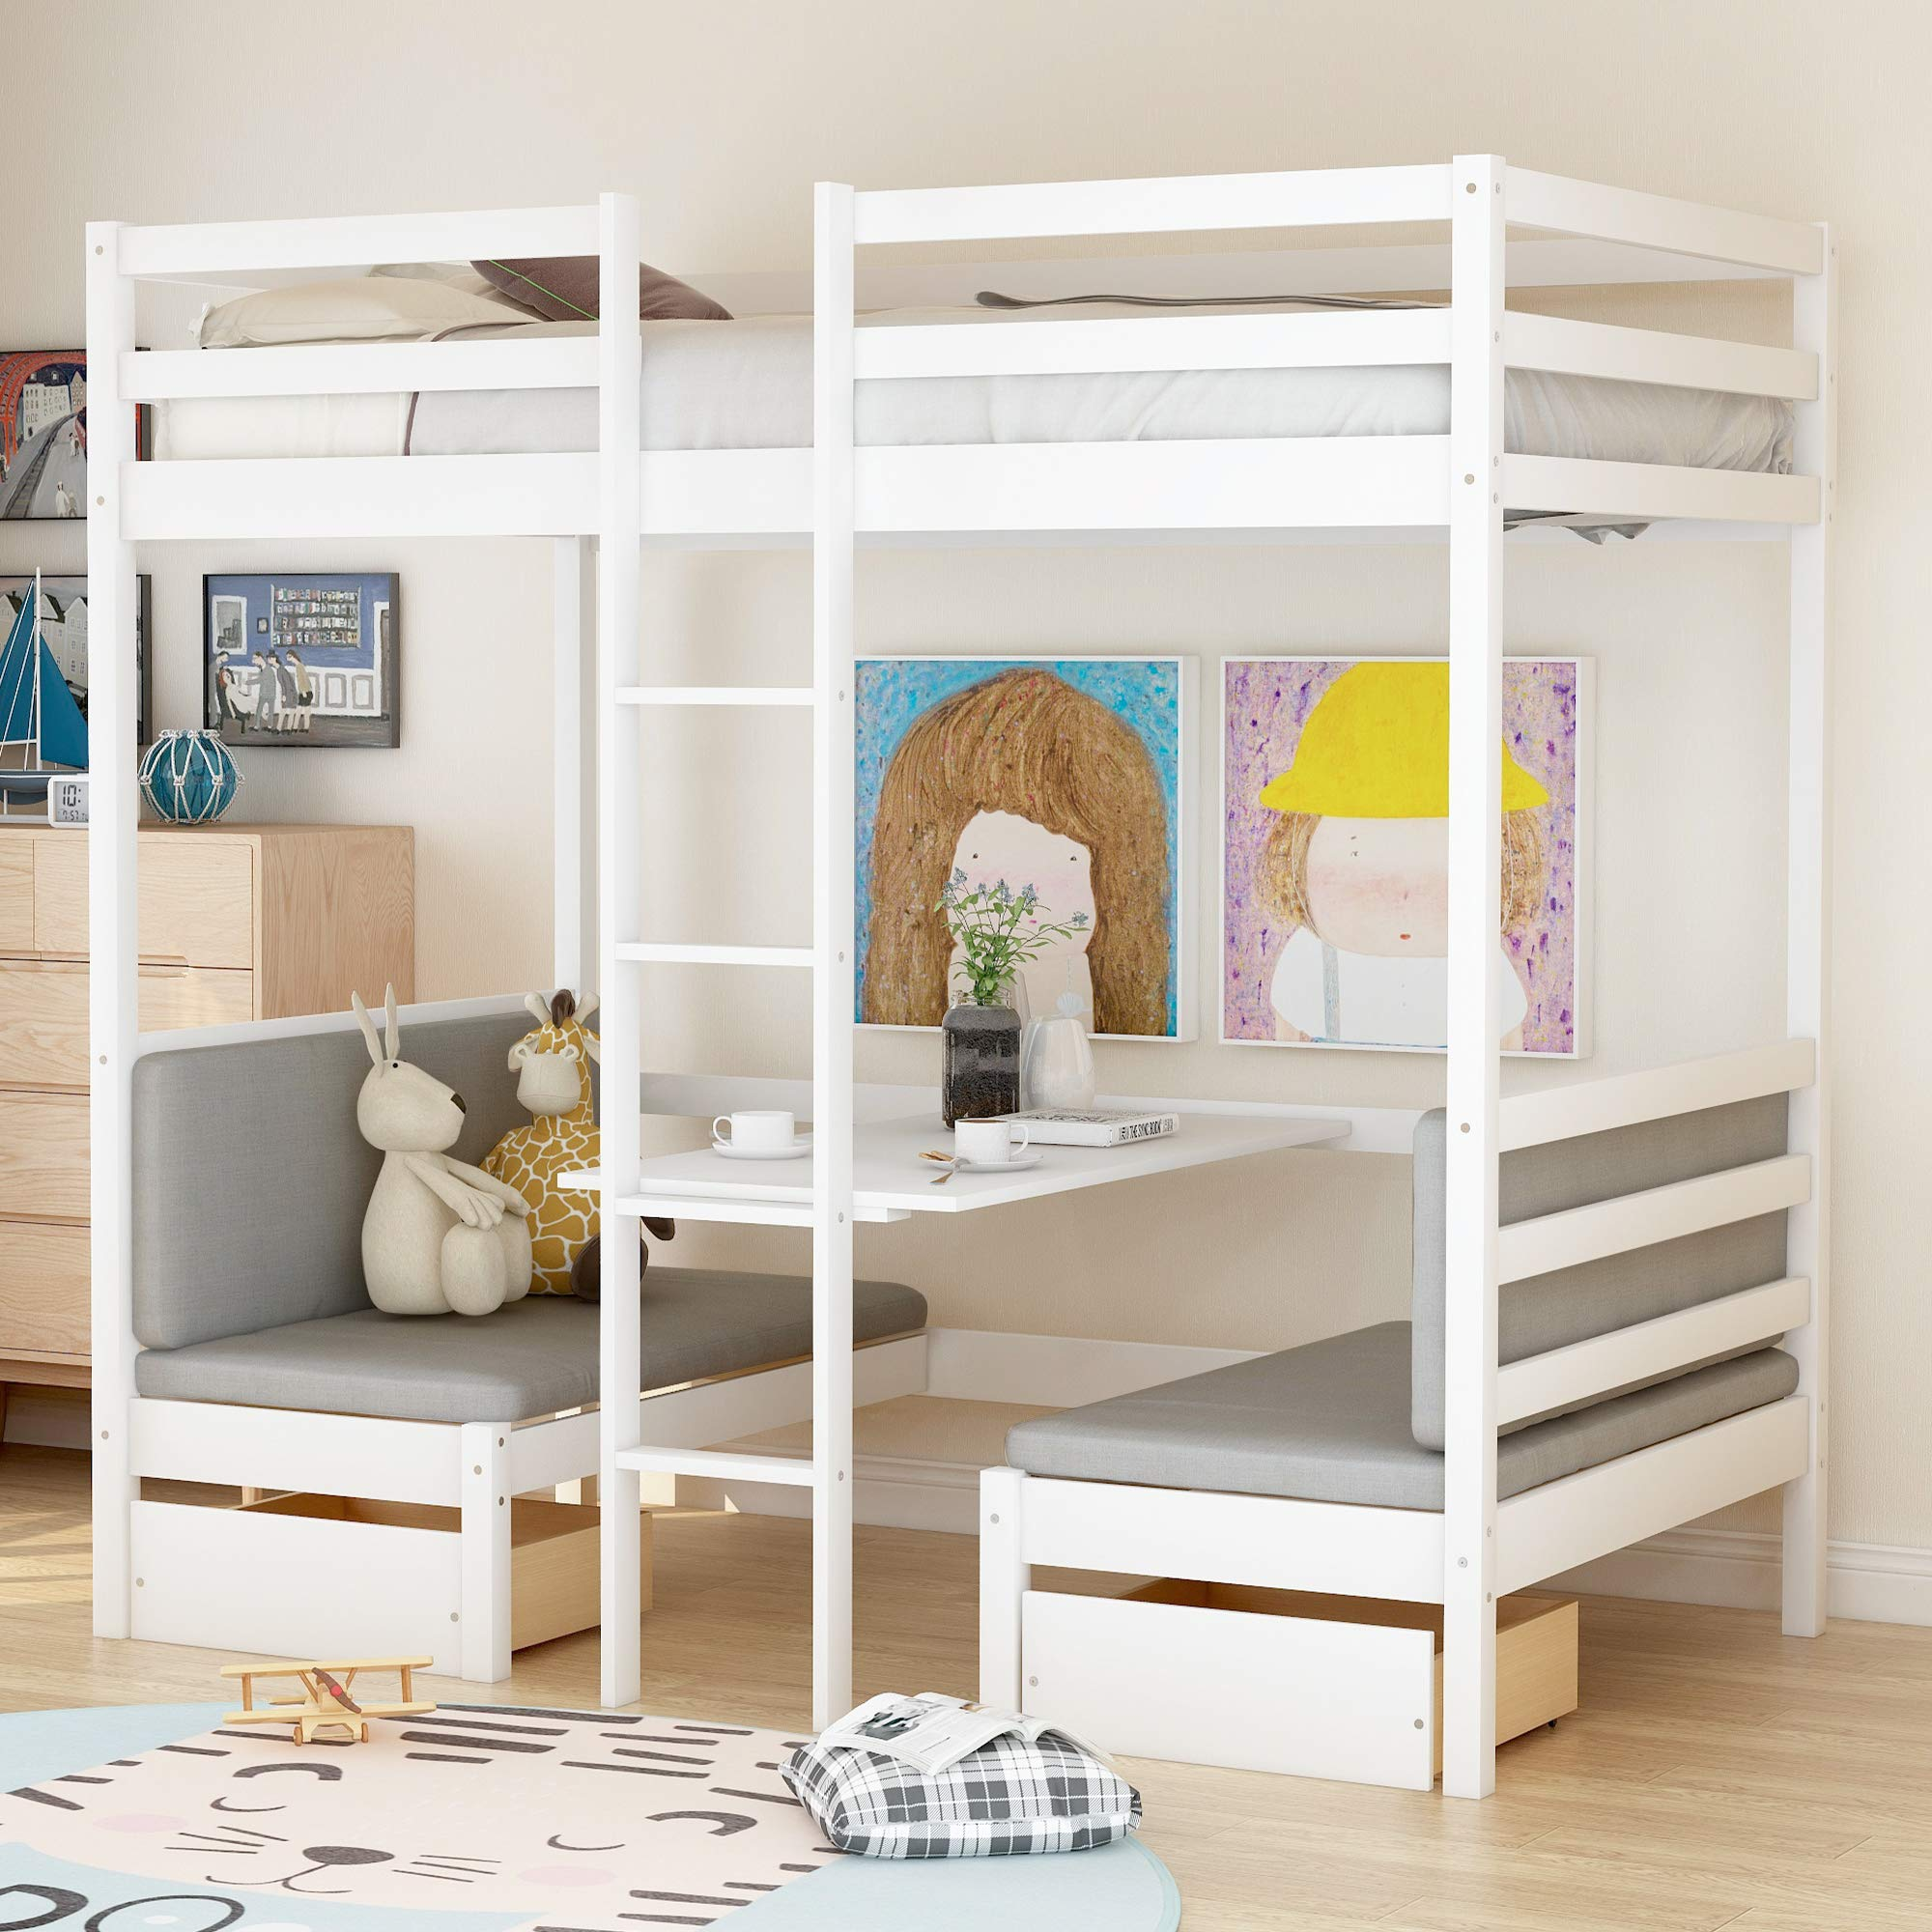 الاضطهاد تدفق سكوير Bunk Bed With Desk Under Loudounhorseassociation Org